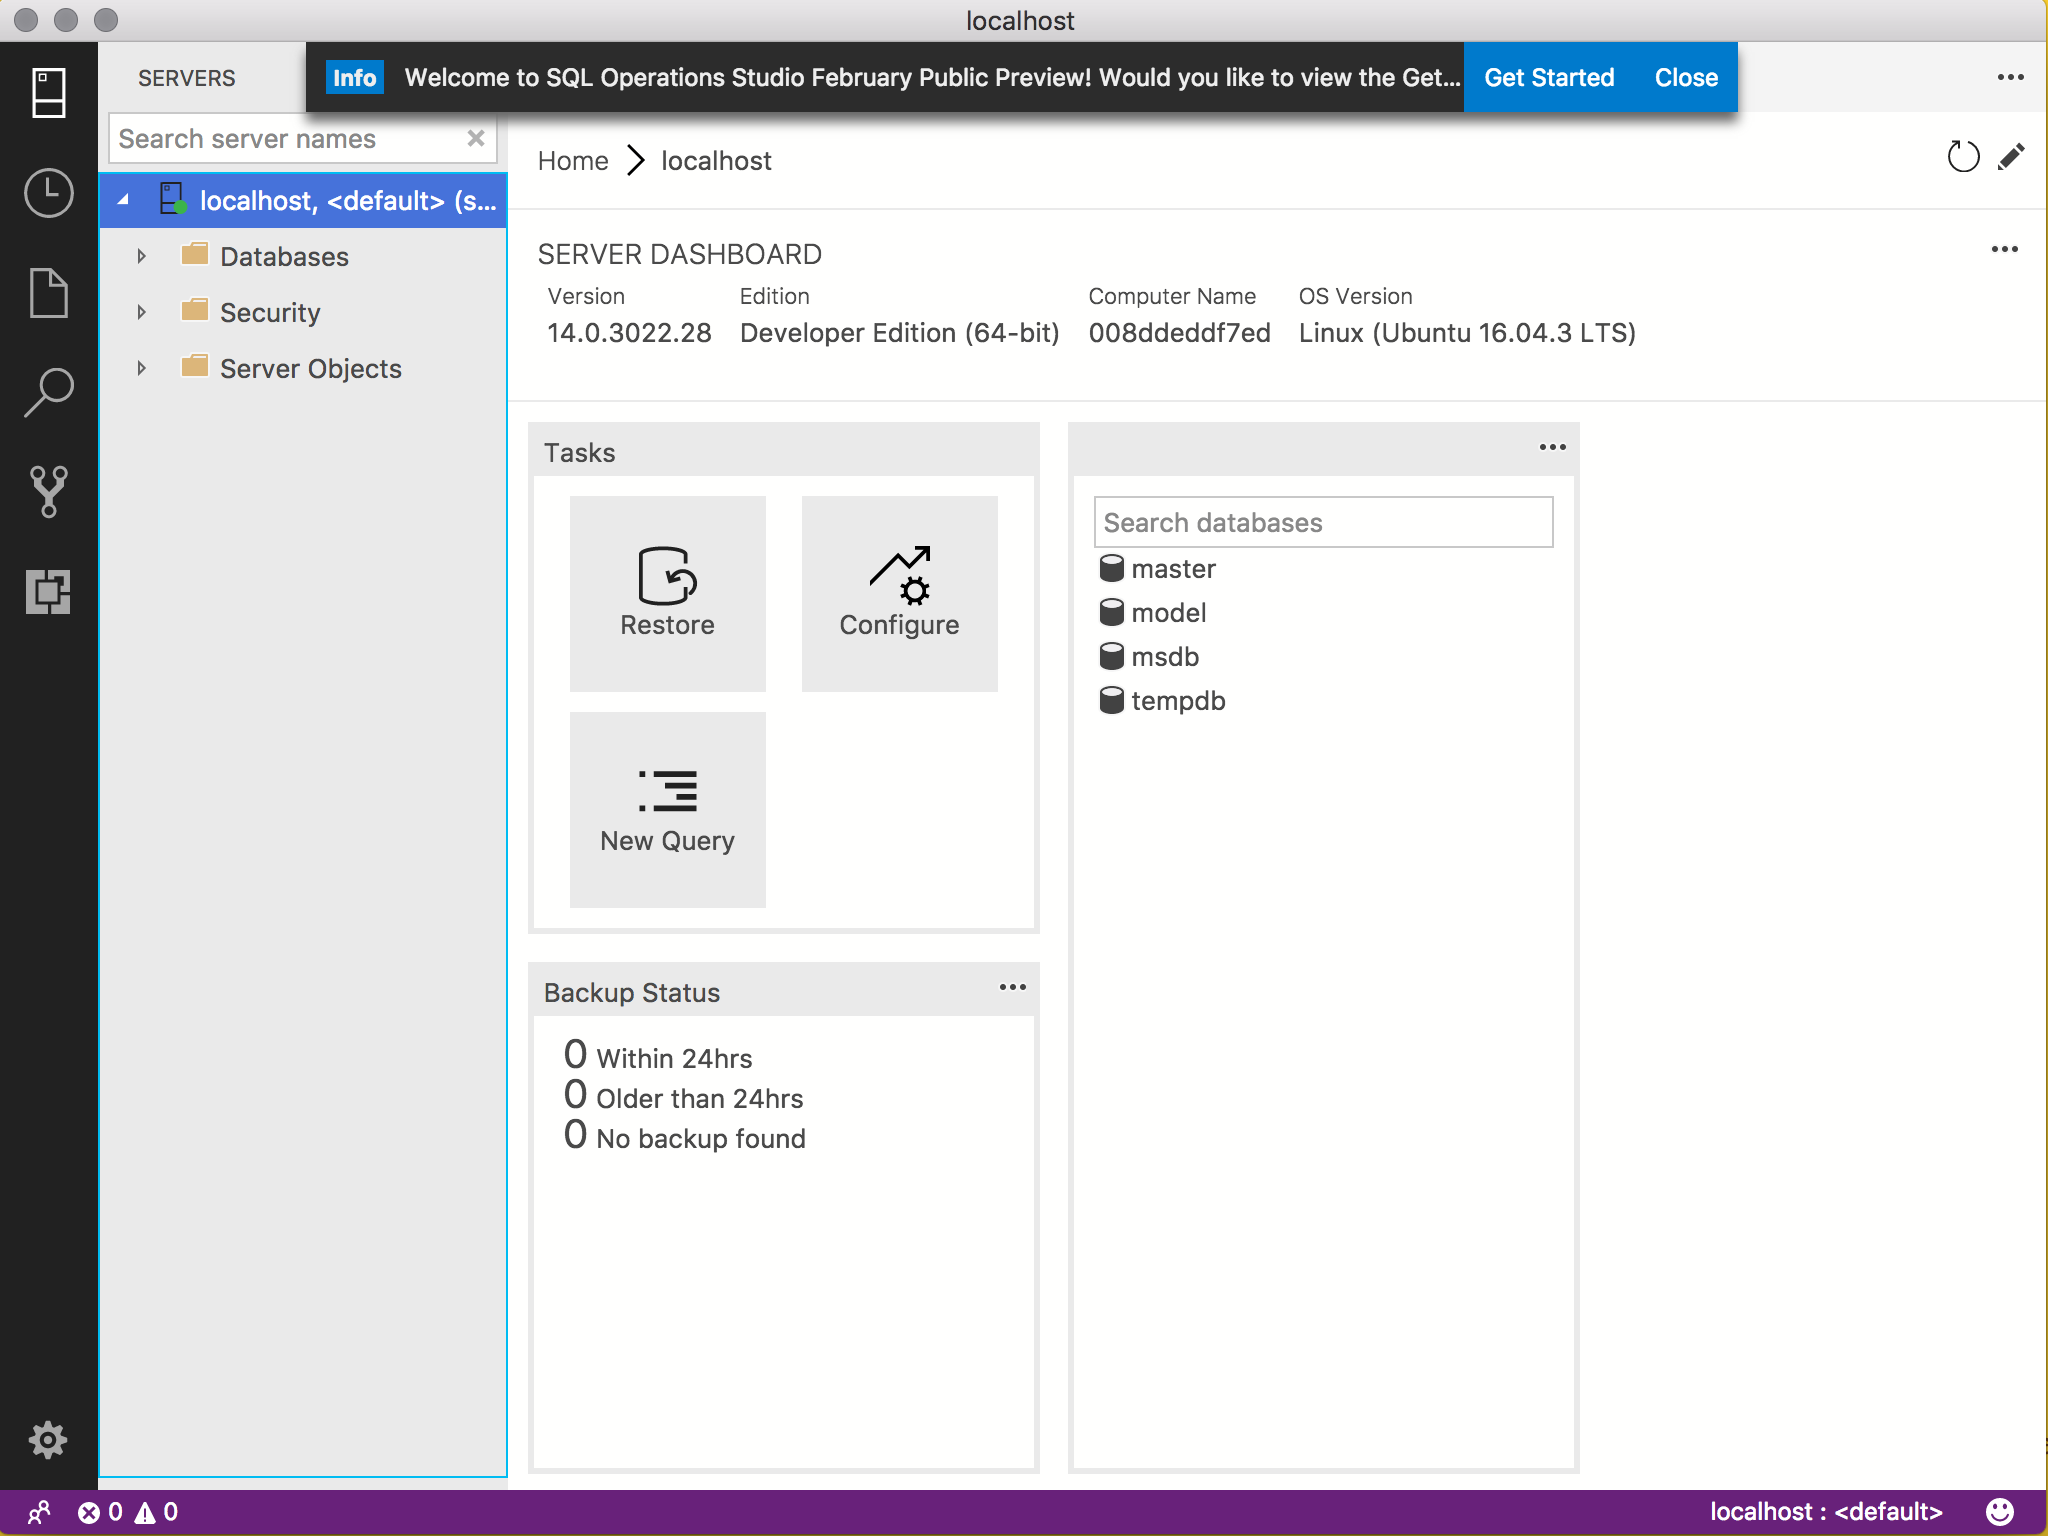 Screenshot of the SQL Operations Studio server dashboard